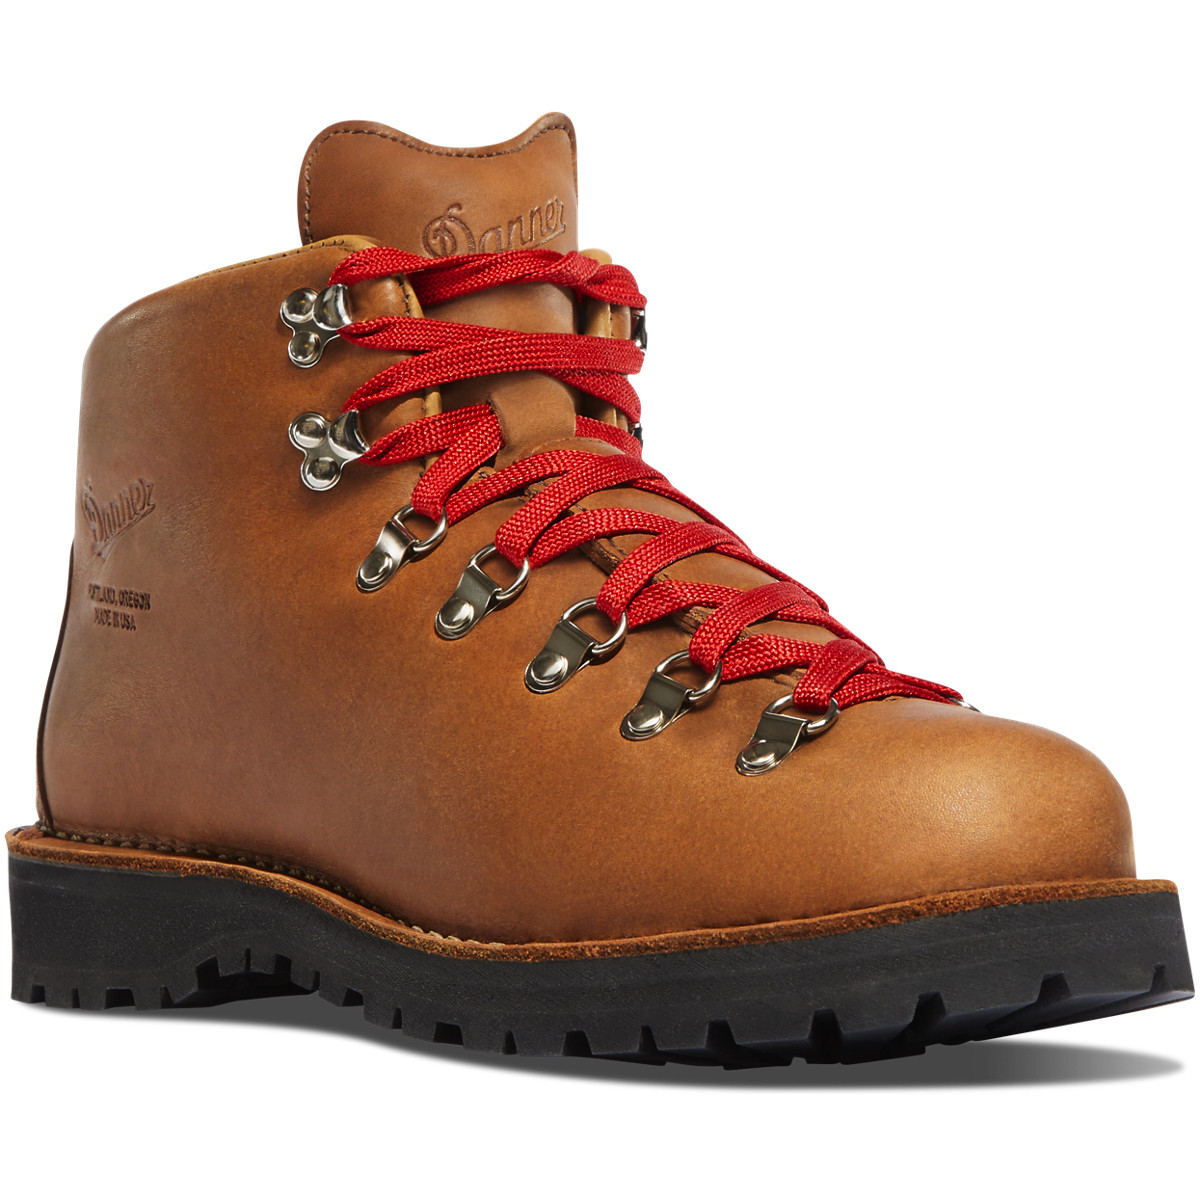 Brown Leather Hiking Boots With Red Shoelaces